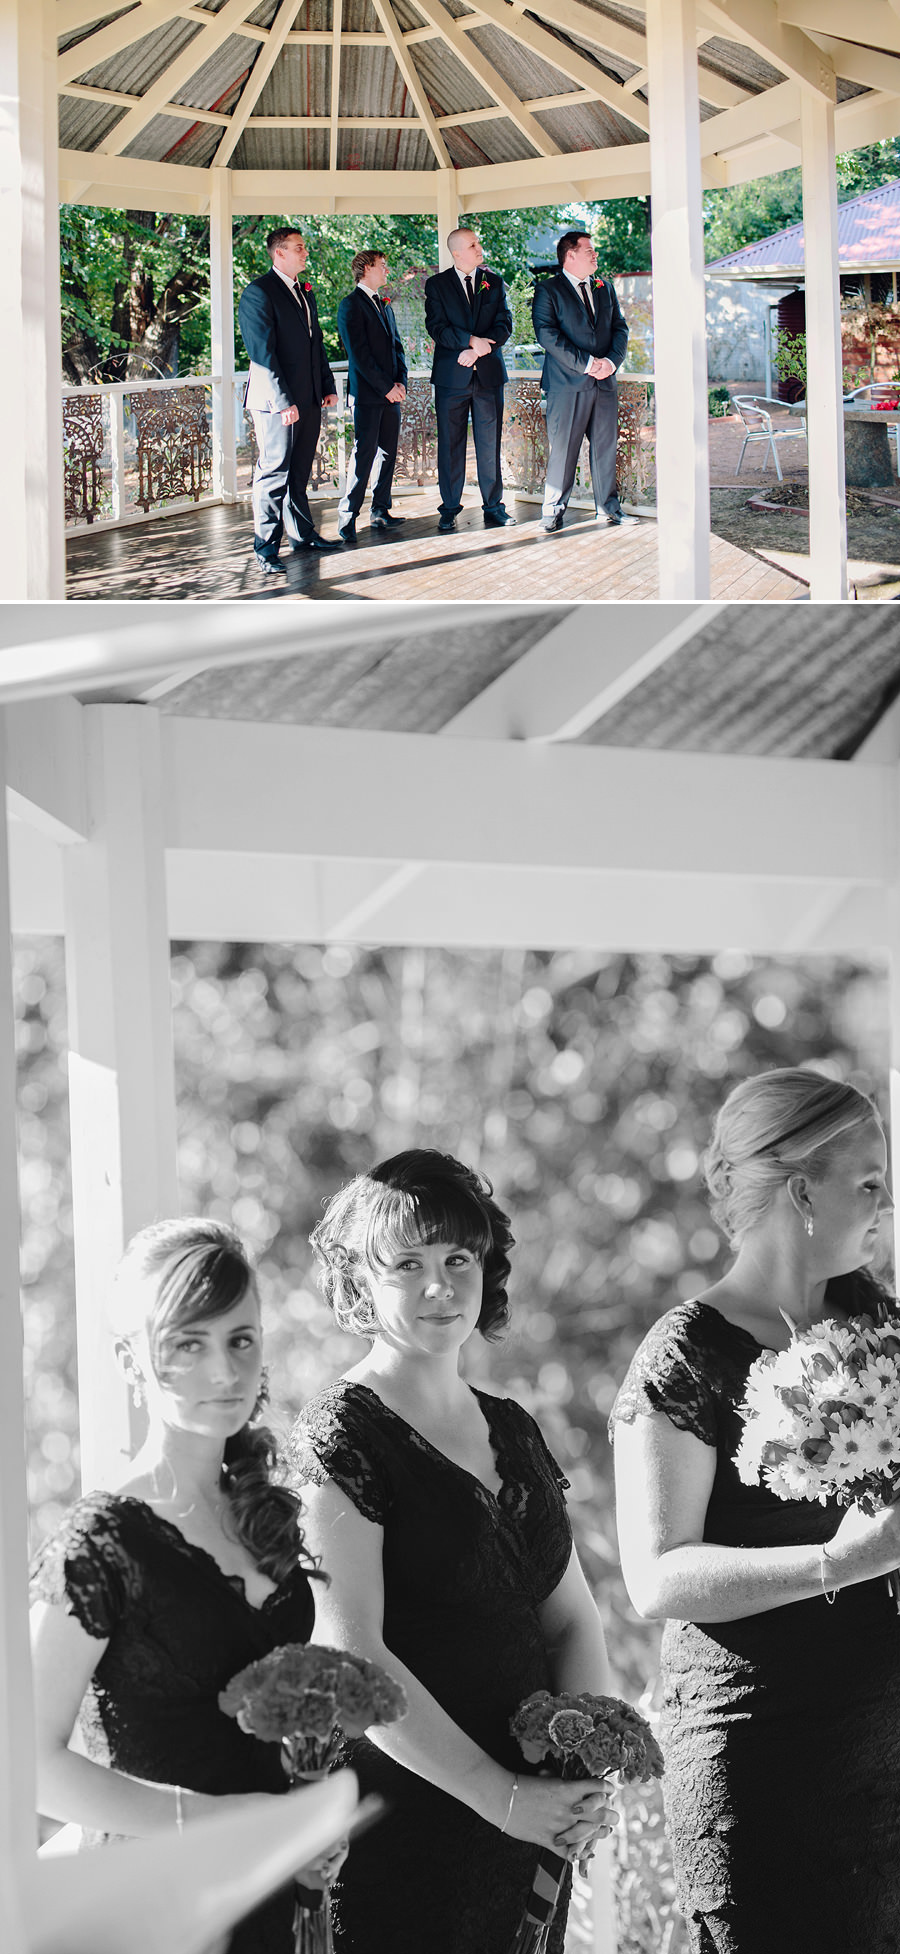 Tuggeranong Wedding Photographer: Ceremony